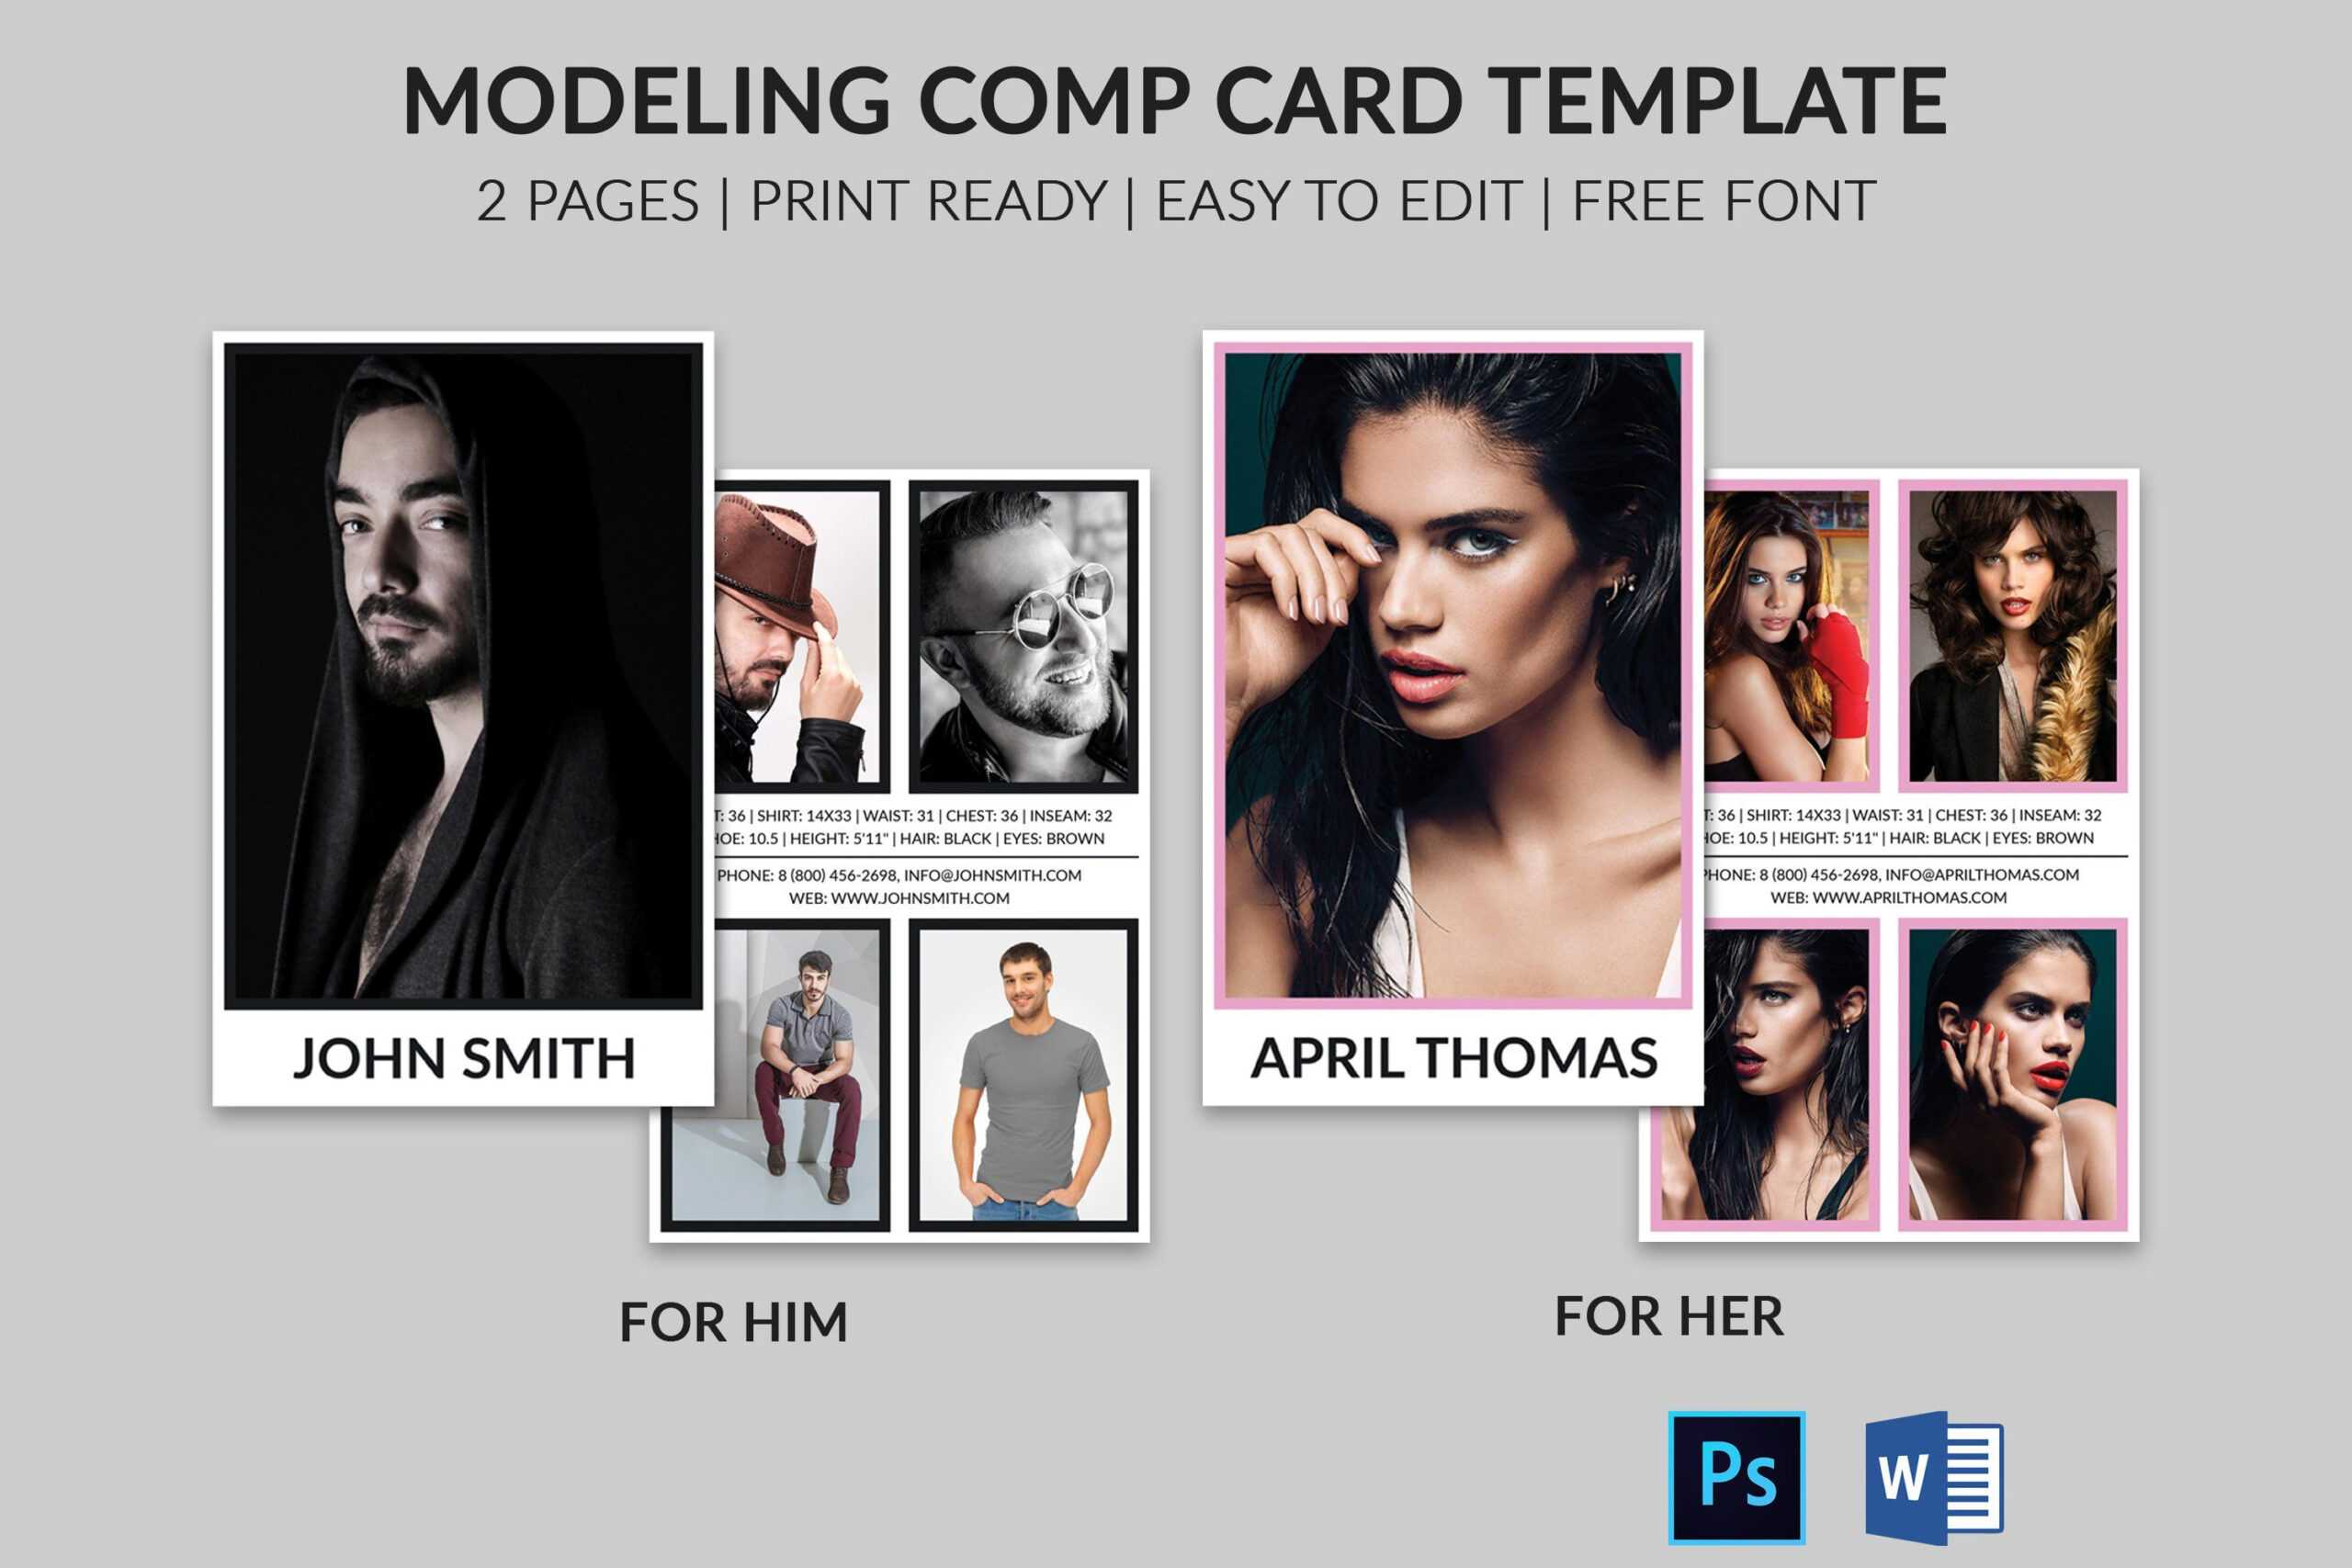 Modeling Comp Card | Model Agency Zed Card | Photoshop & Ms within Free Zed Card Template